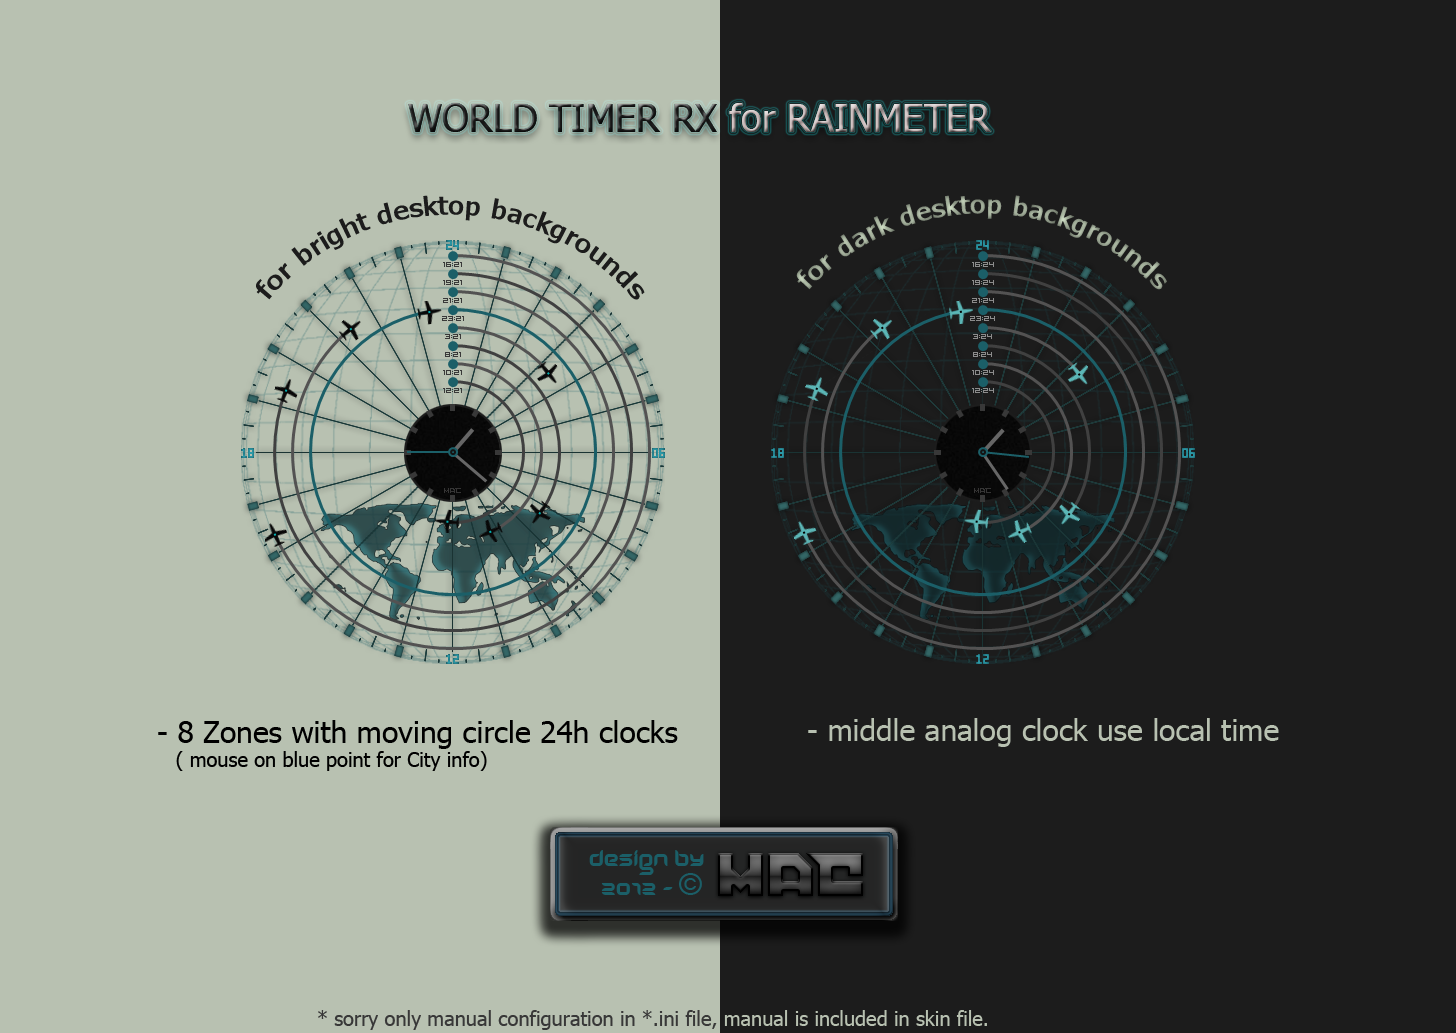 Awesome world clocks design pictures simple design home levitra 9 world timer rx radar rainmeter by d4fmac on deviantart gumiabroncs Image collections